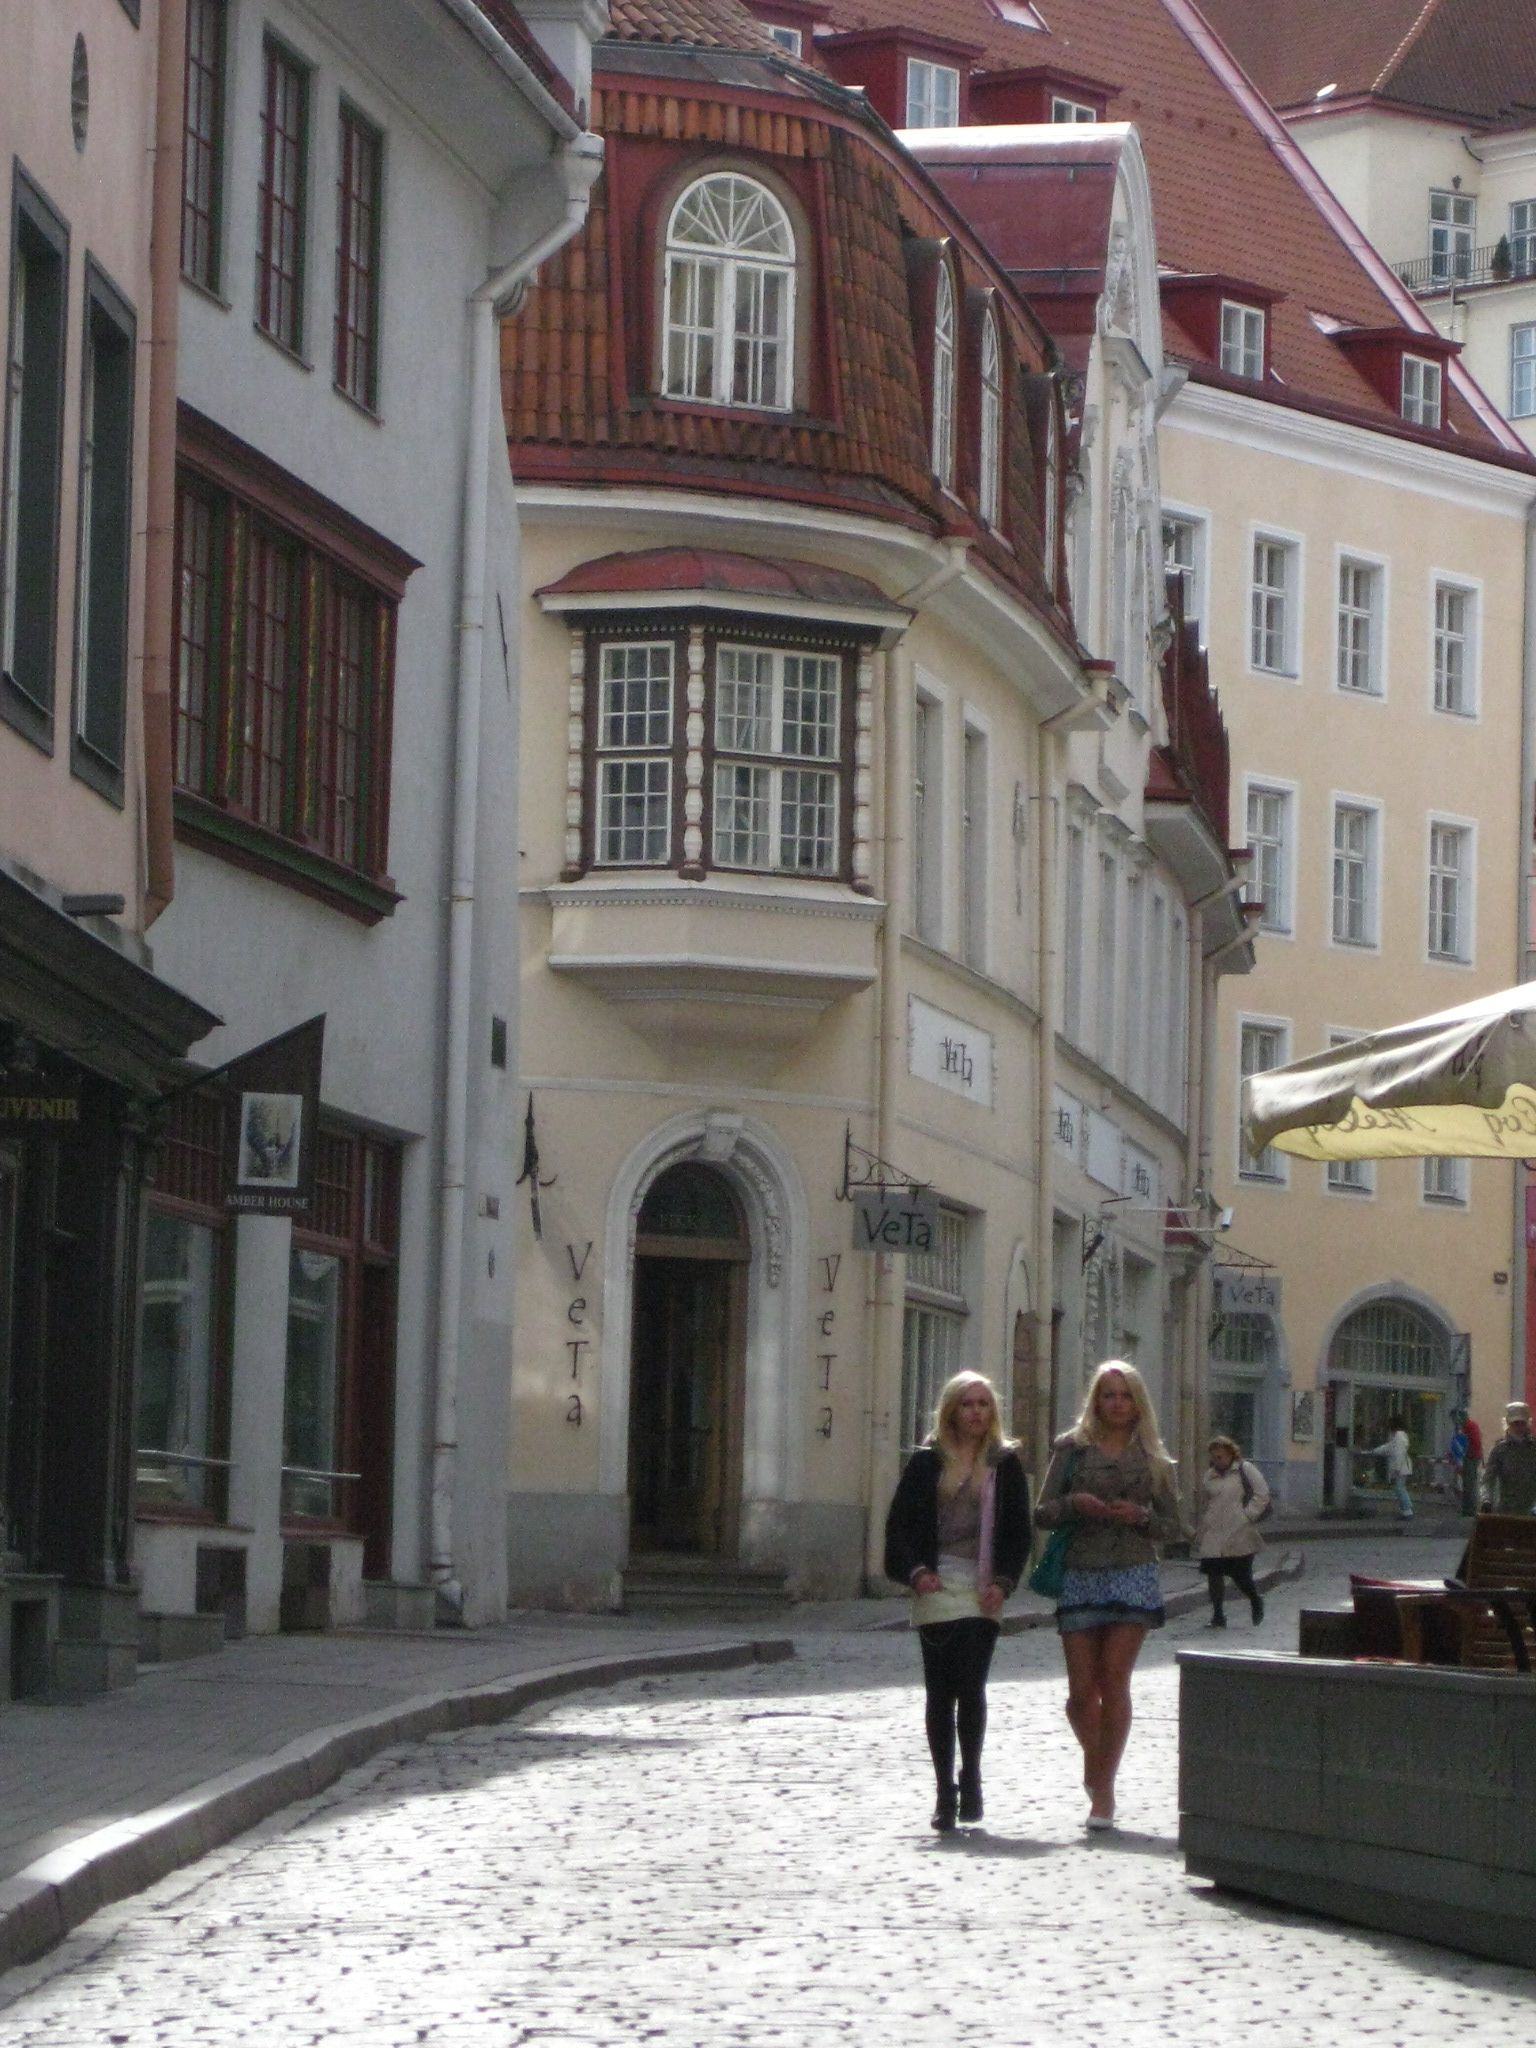 2 Estonian girls walking in Old Town Tallinn, Estonia